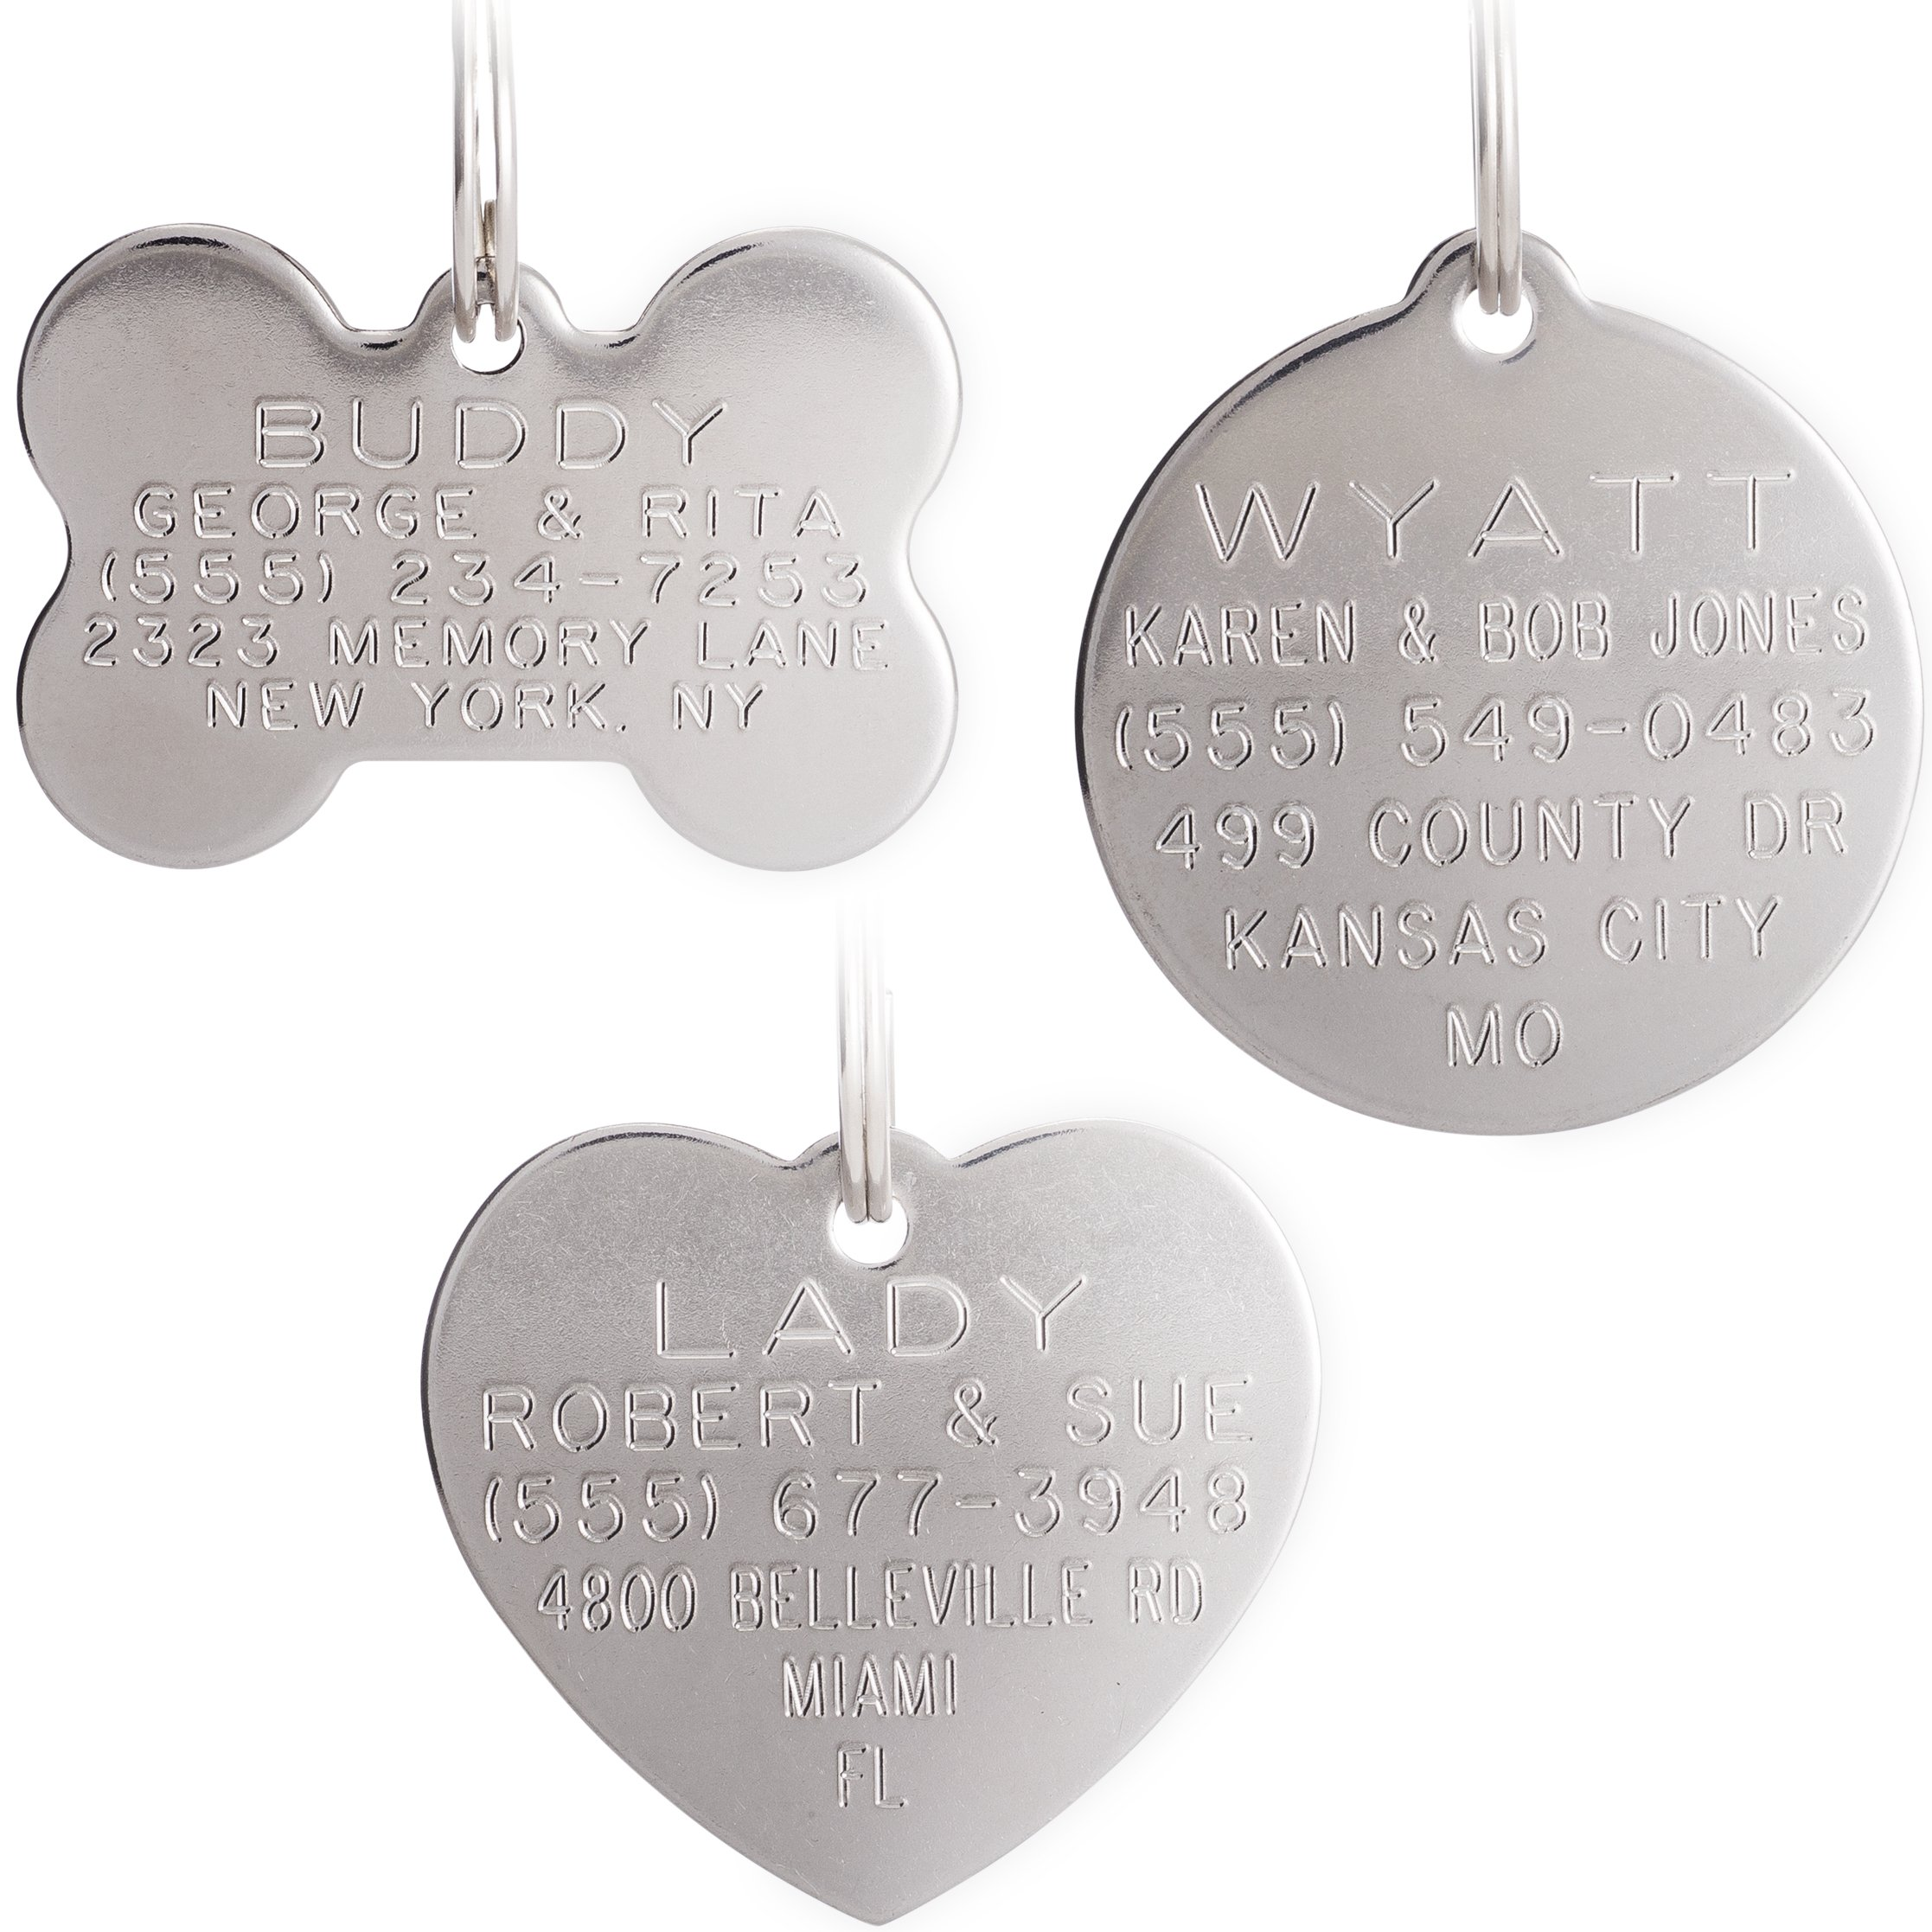 Leashboss Stainless Steel Pet ID Tags - Deep Engraved No Fade - Bone, Round, or Heart - 4 Sizes, X-Small to Large Available - Customized Identification for Dogs and Cats (Bone, Large (Big Breed Dogs))